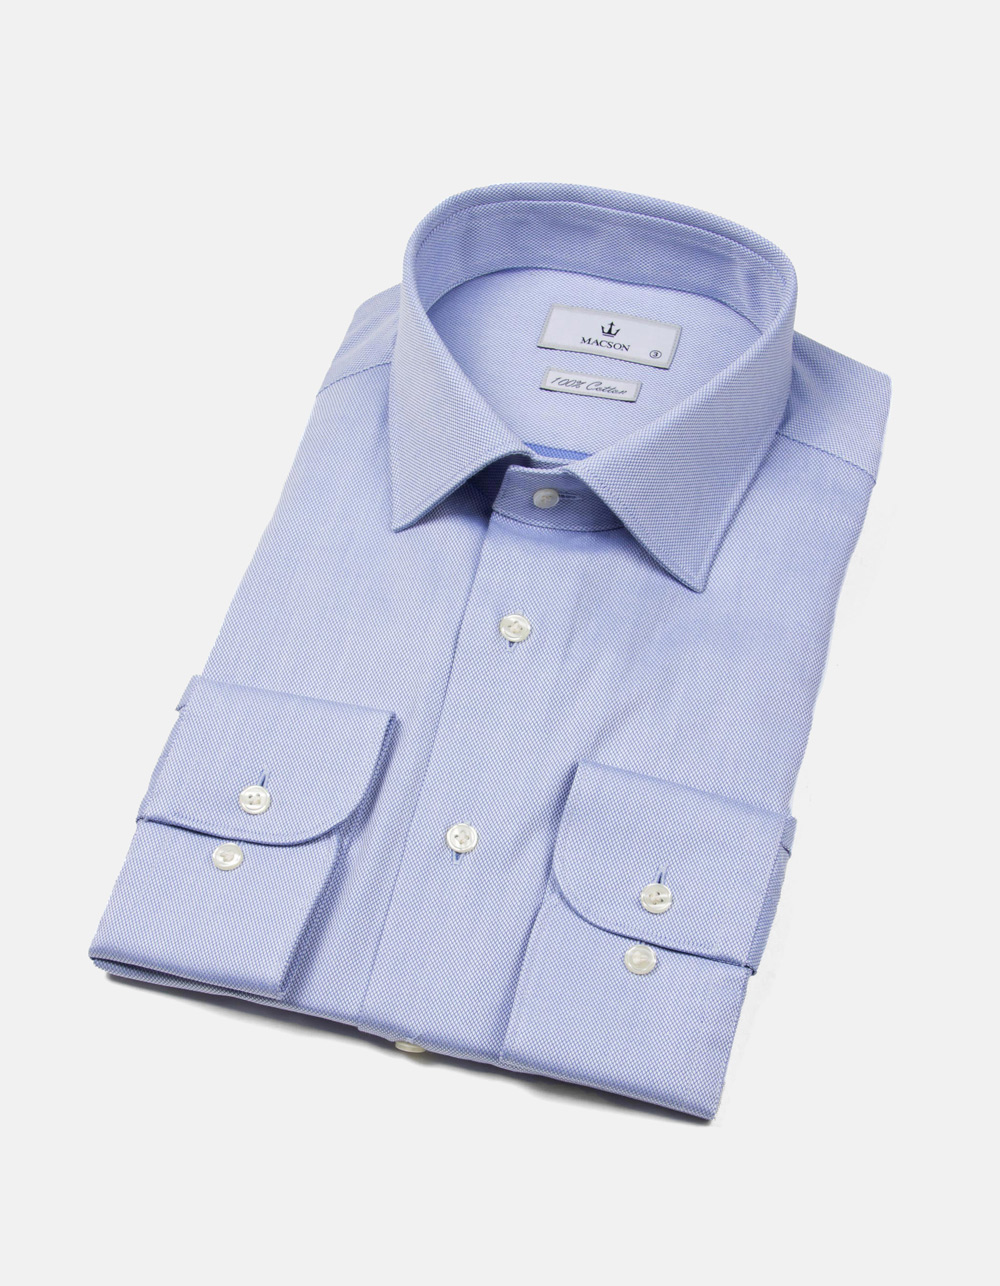 Blue and white Oxford shirt